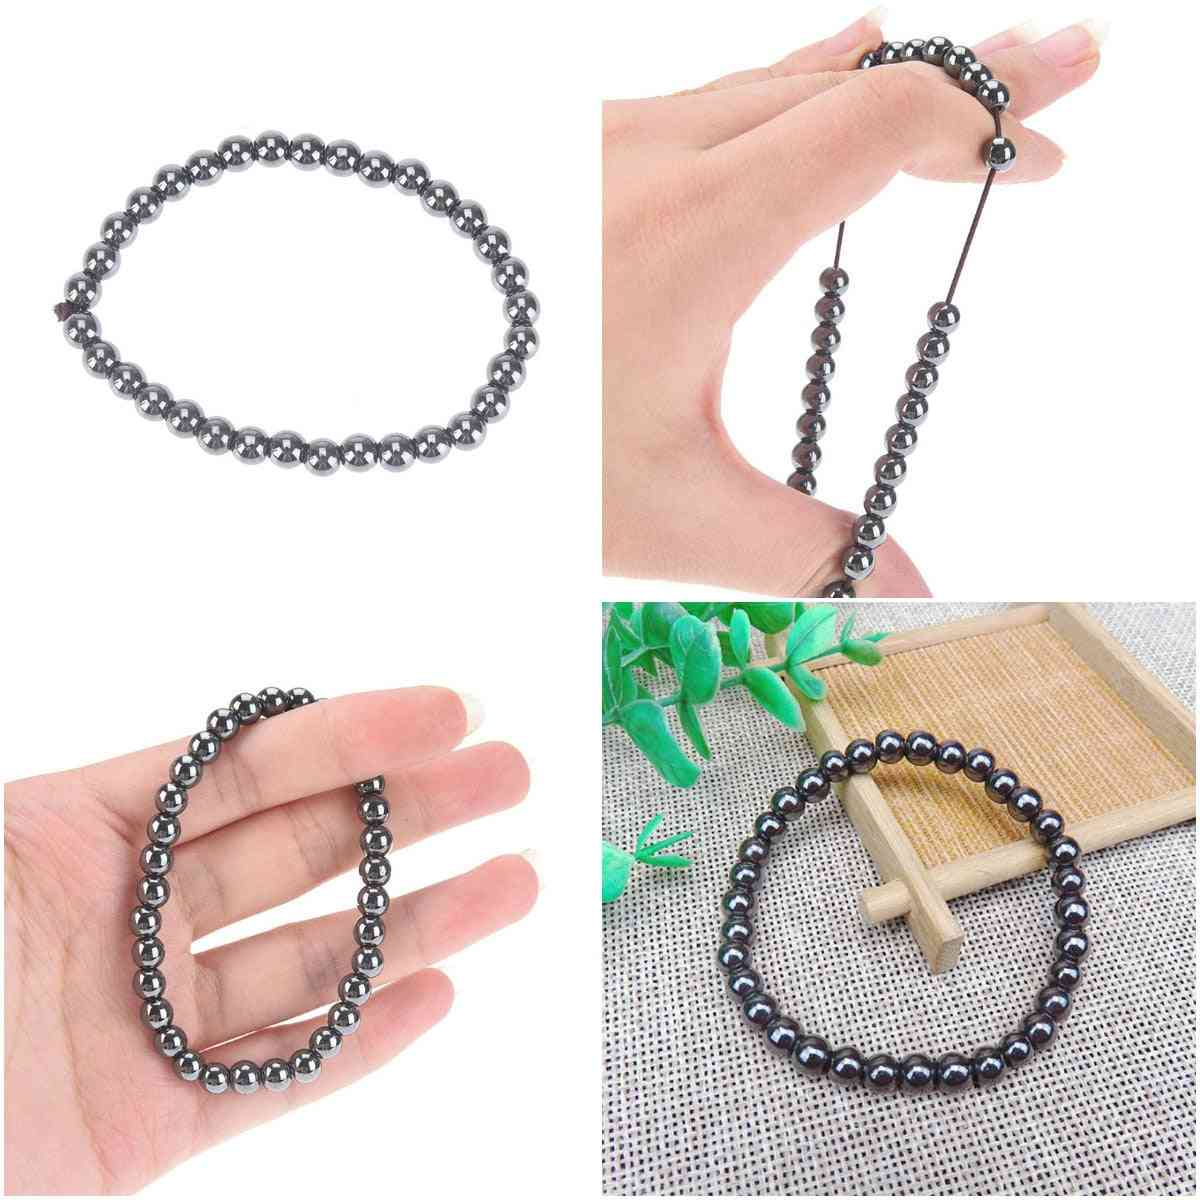 Luxury Slimming- Round Magnetic, Therapy Bracelet For Weight Loss